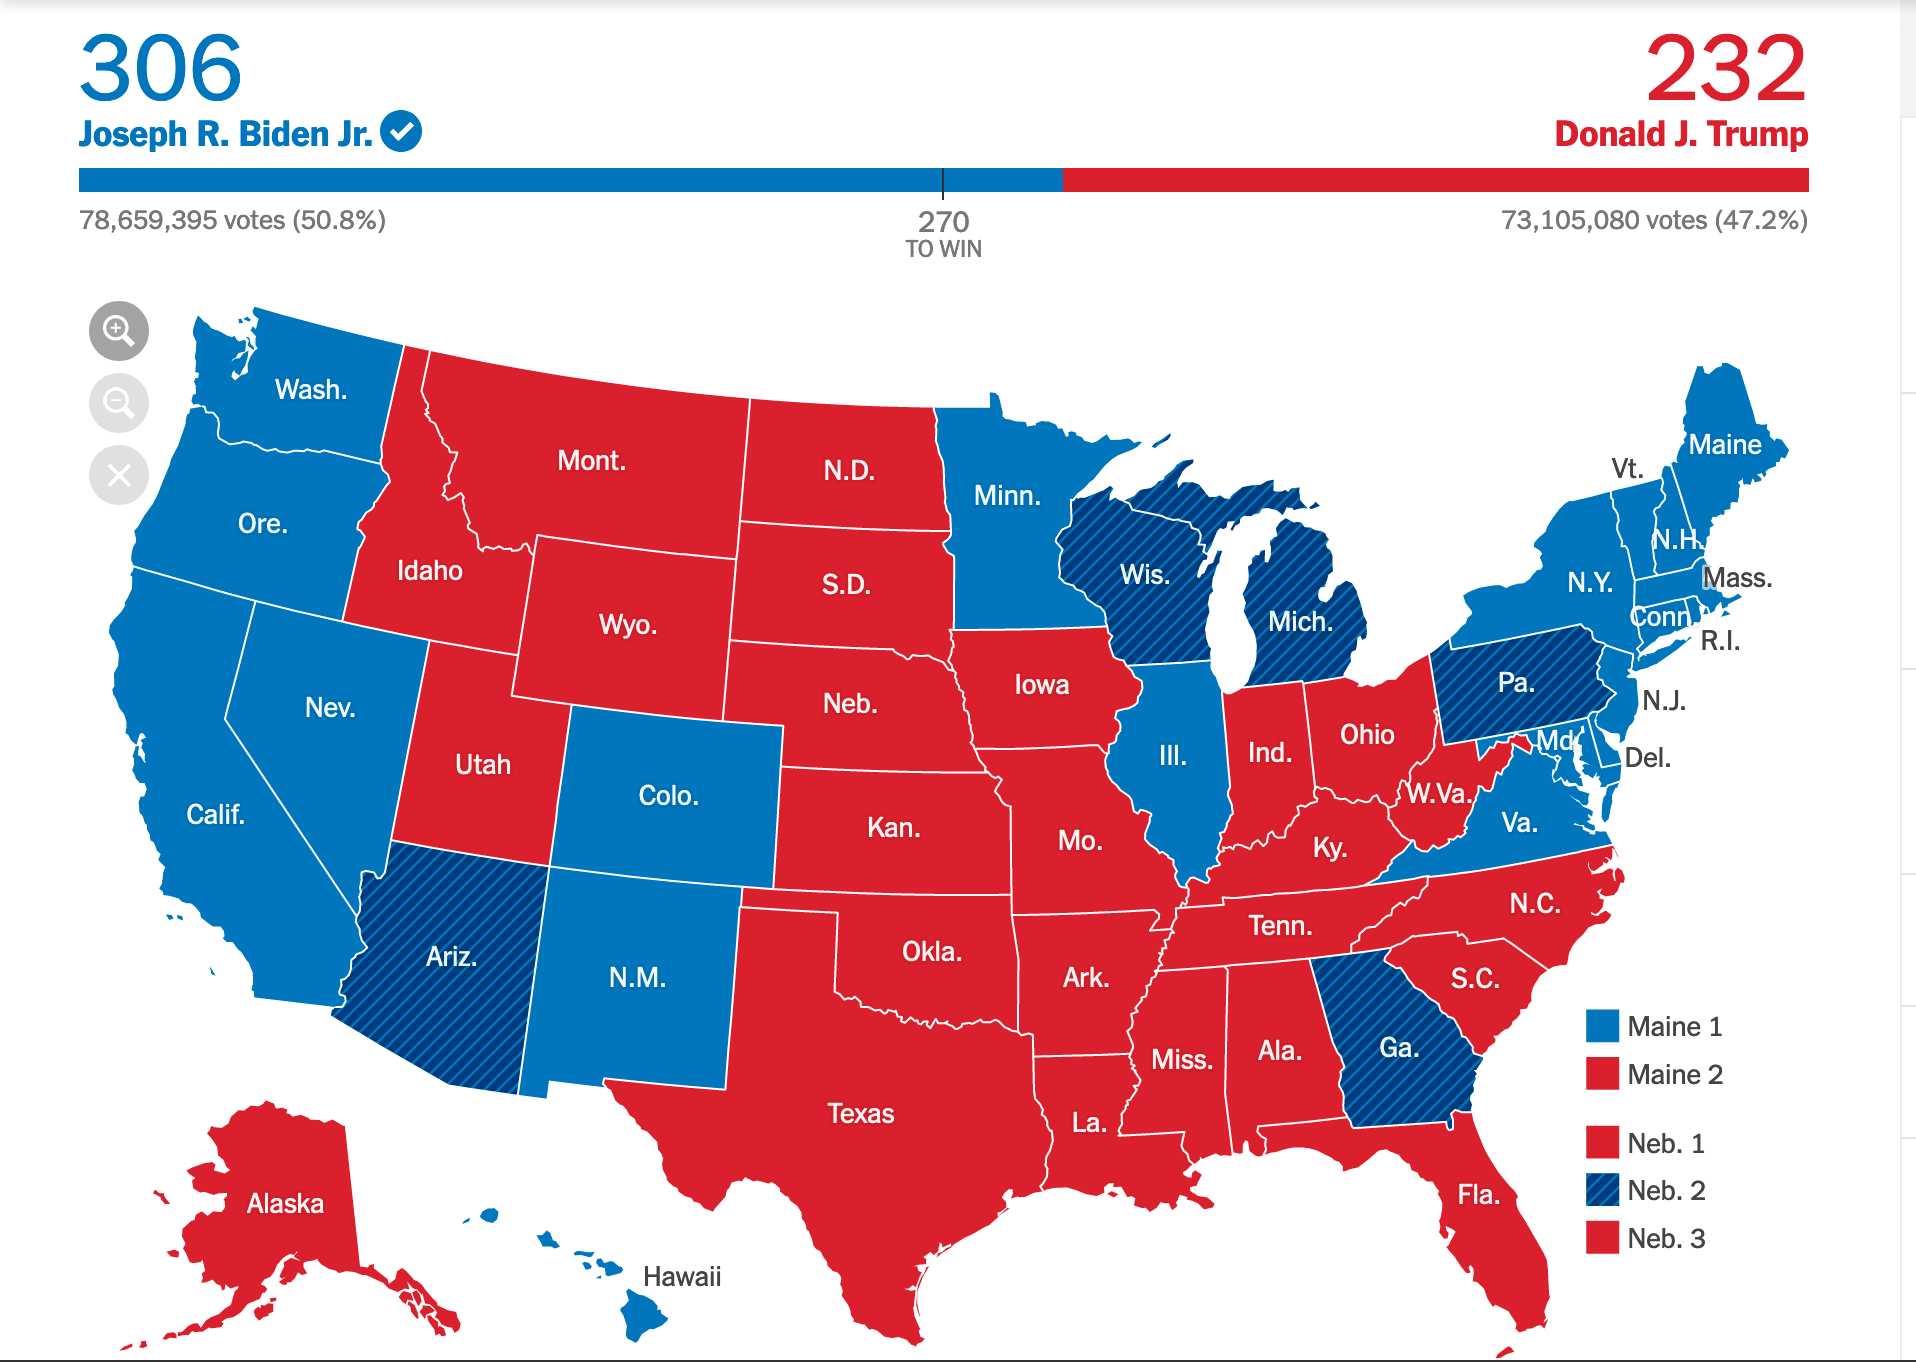 2020 Presidential Election Electoral College Map (220.11.15 03:05) | © The New York Times